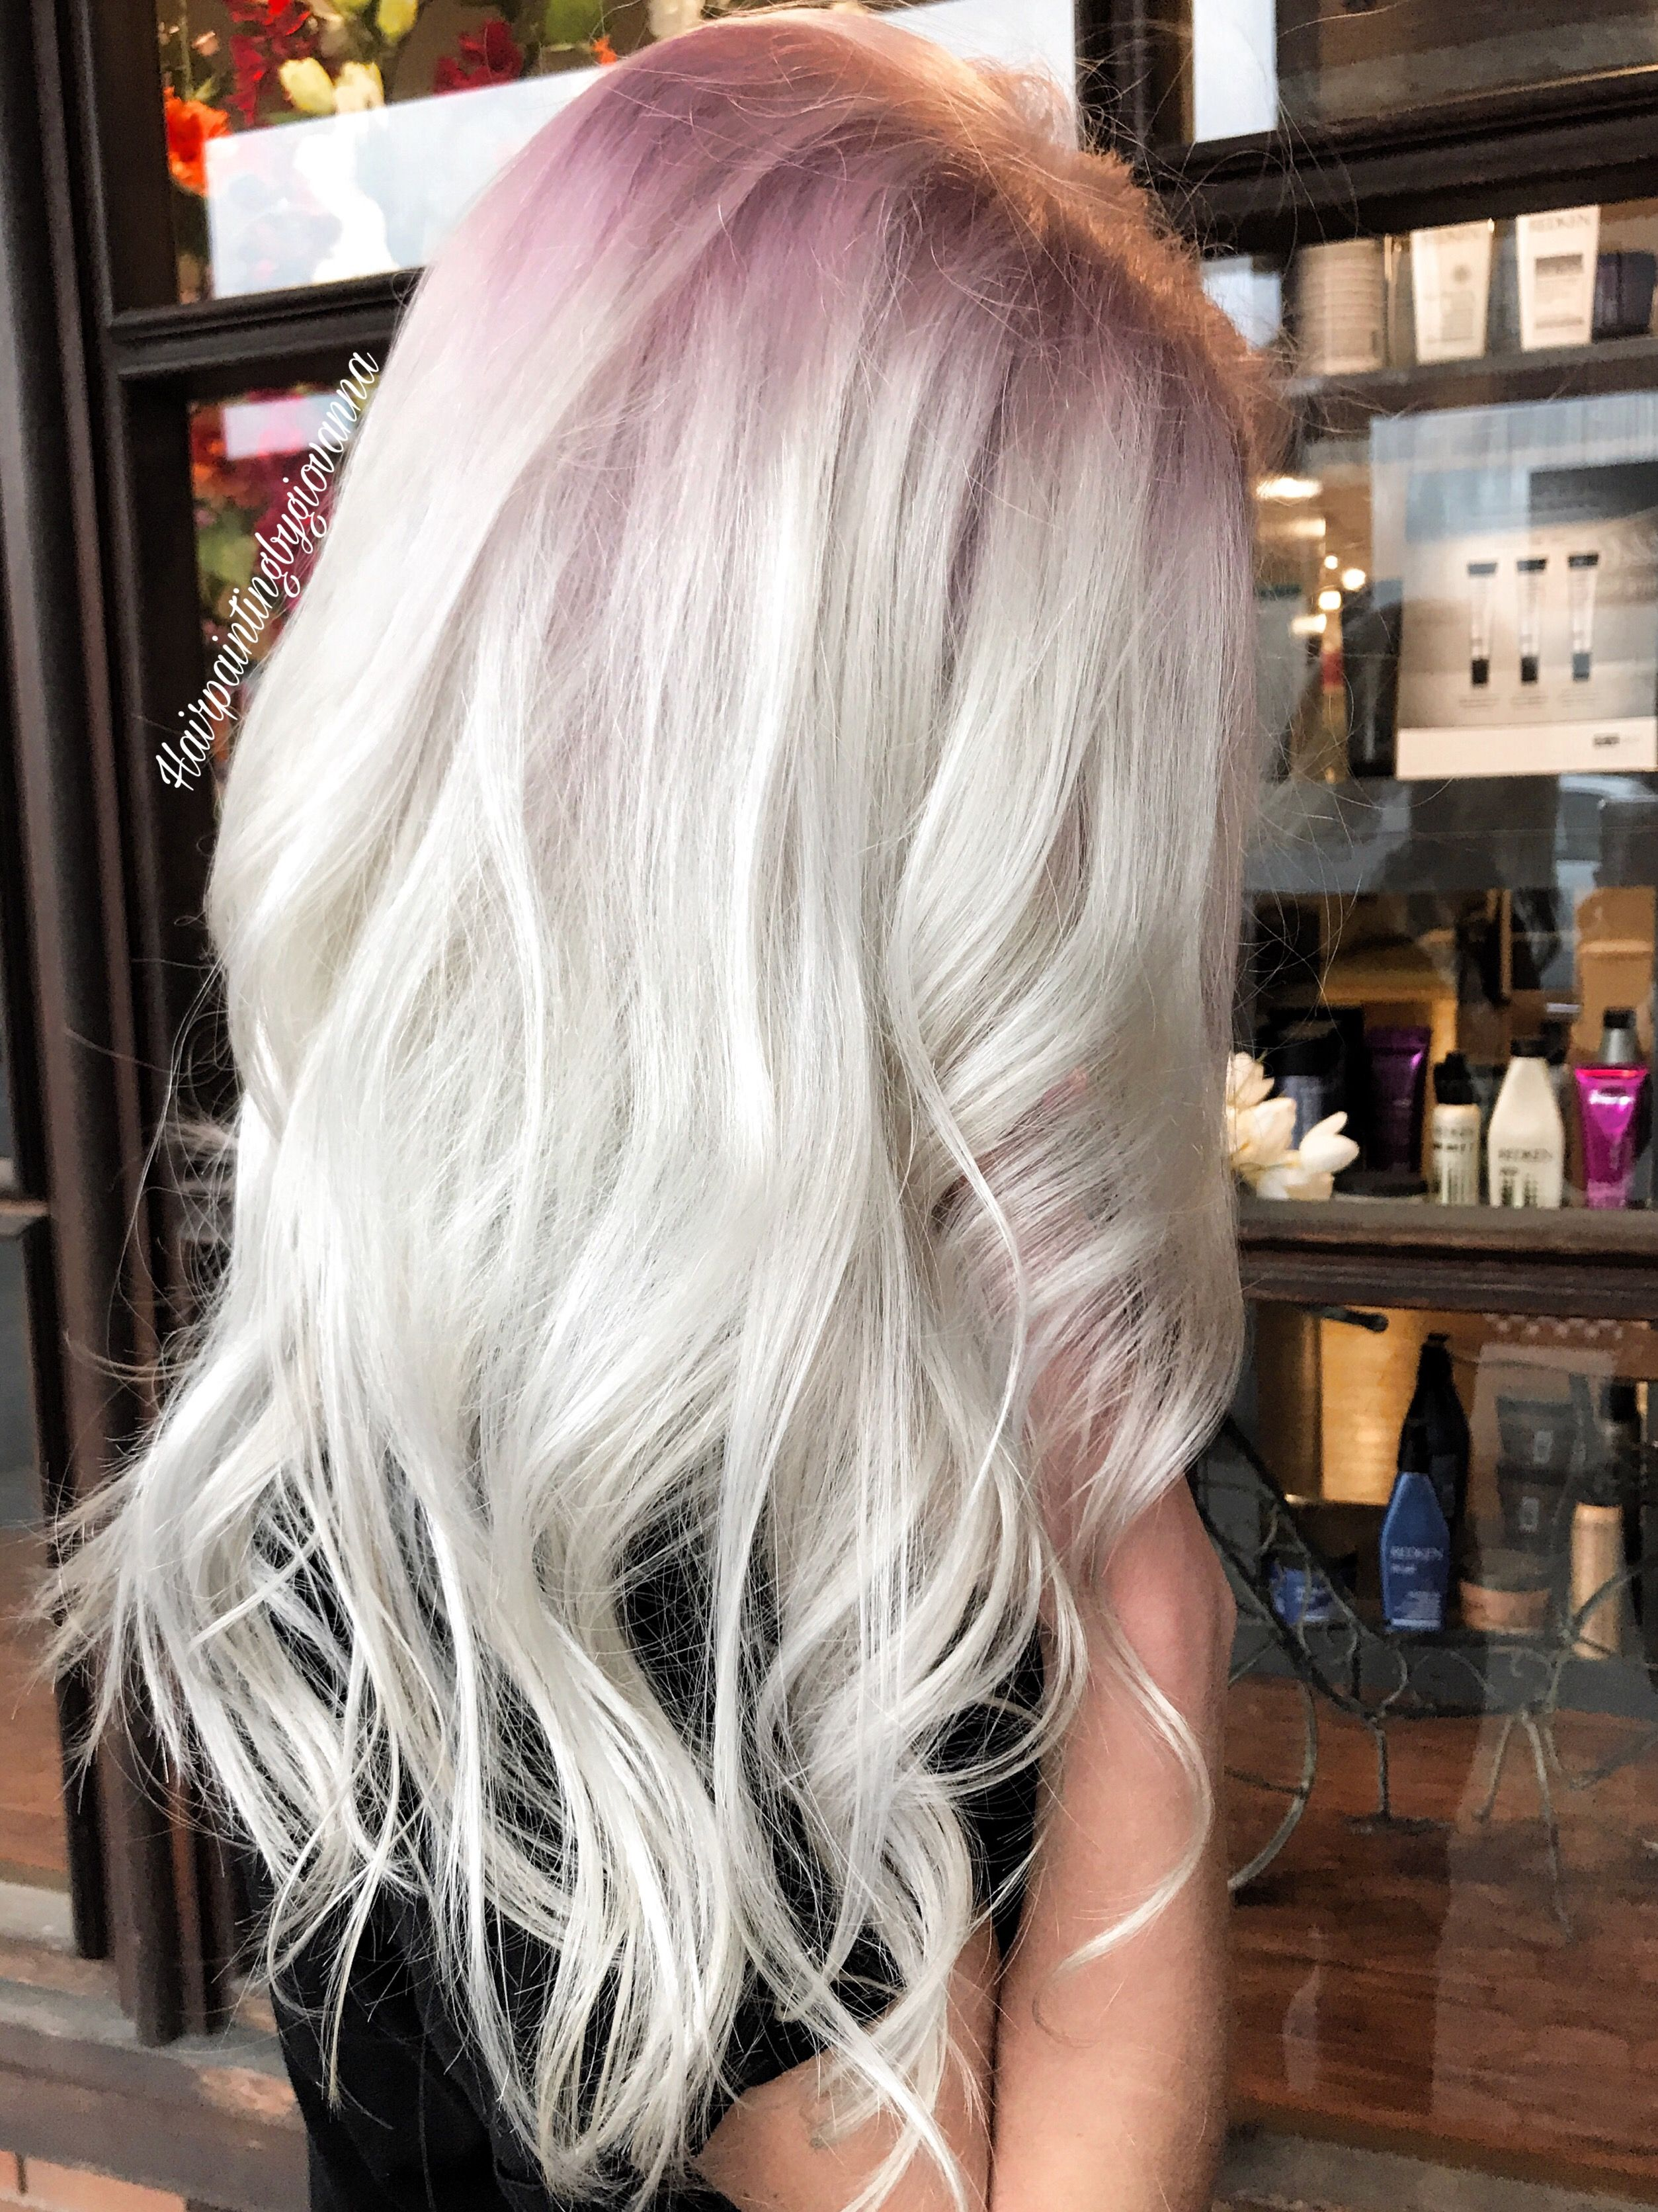 Stunning Platinum Hair With A Subtle Rose Gold Shadow Root Using All